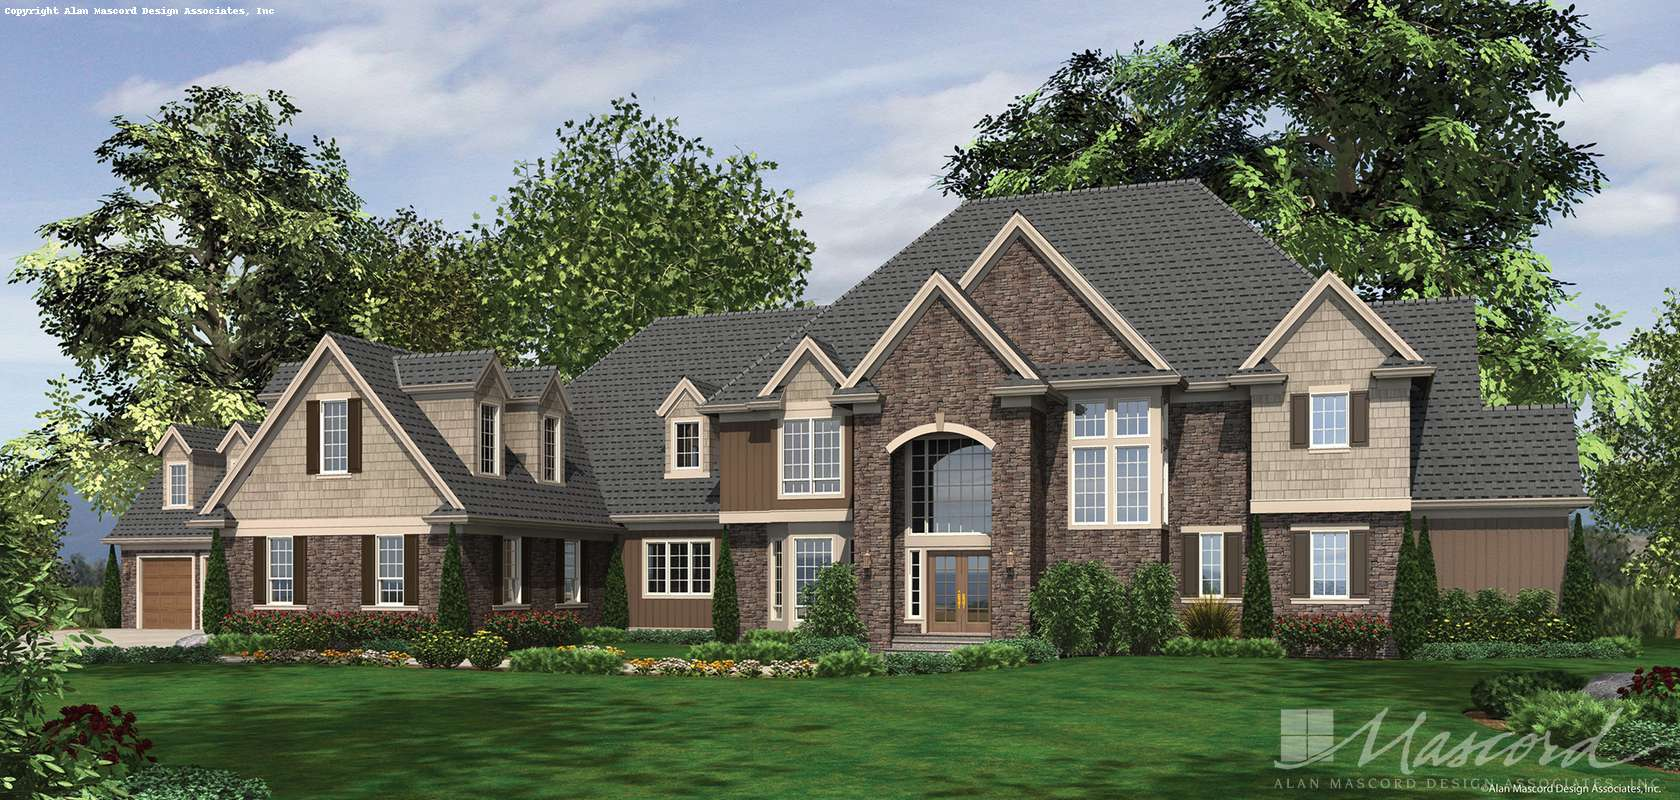 Mascord House Plan 2454: The Elstad